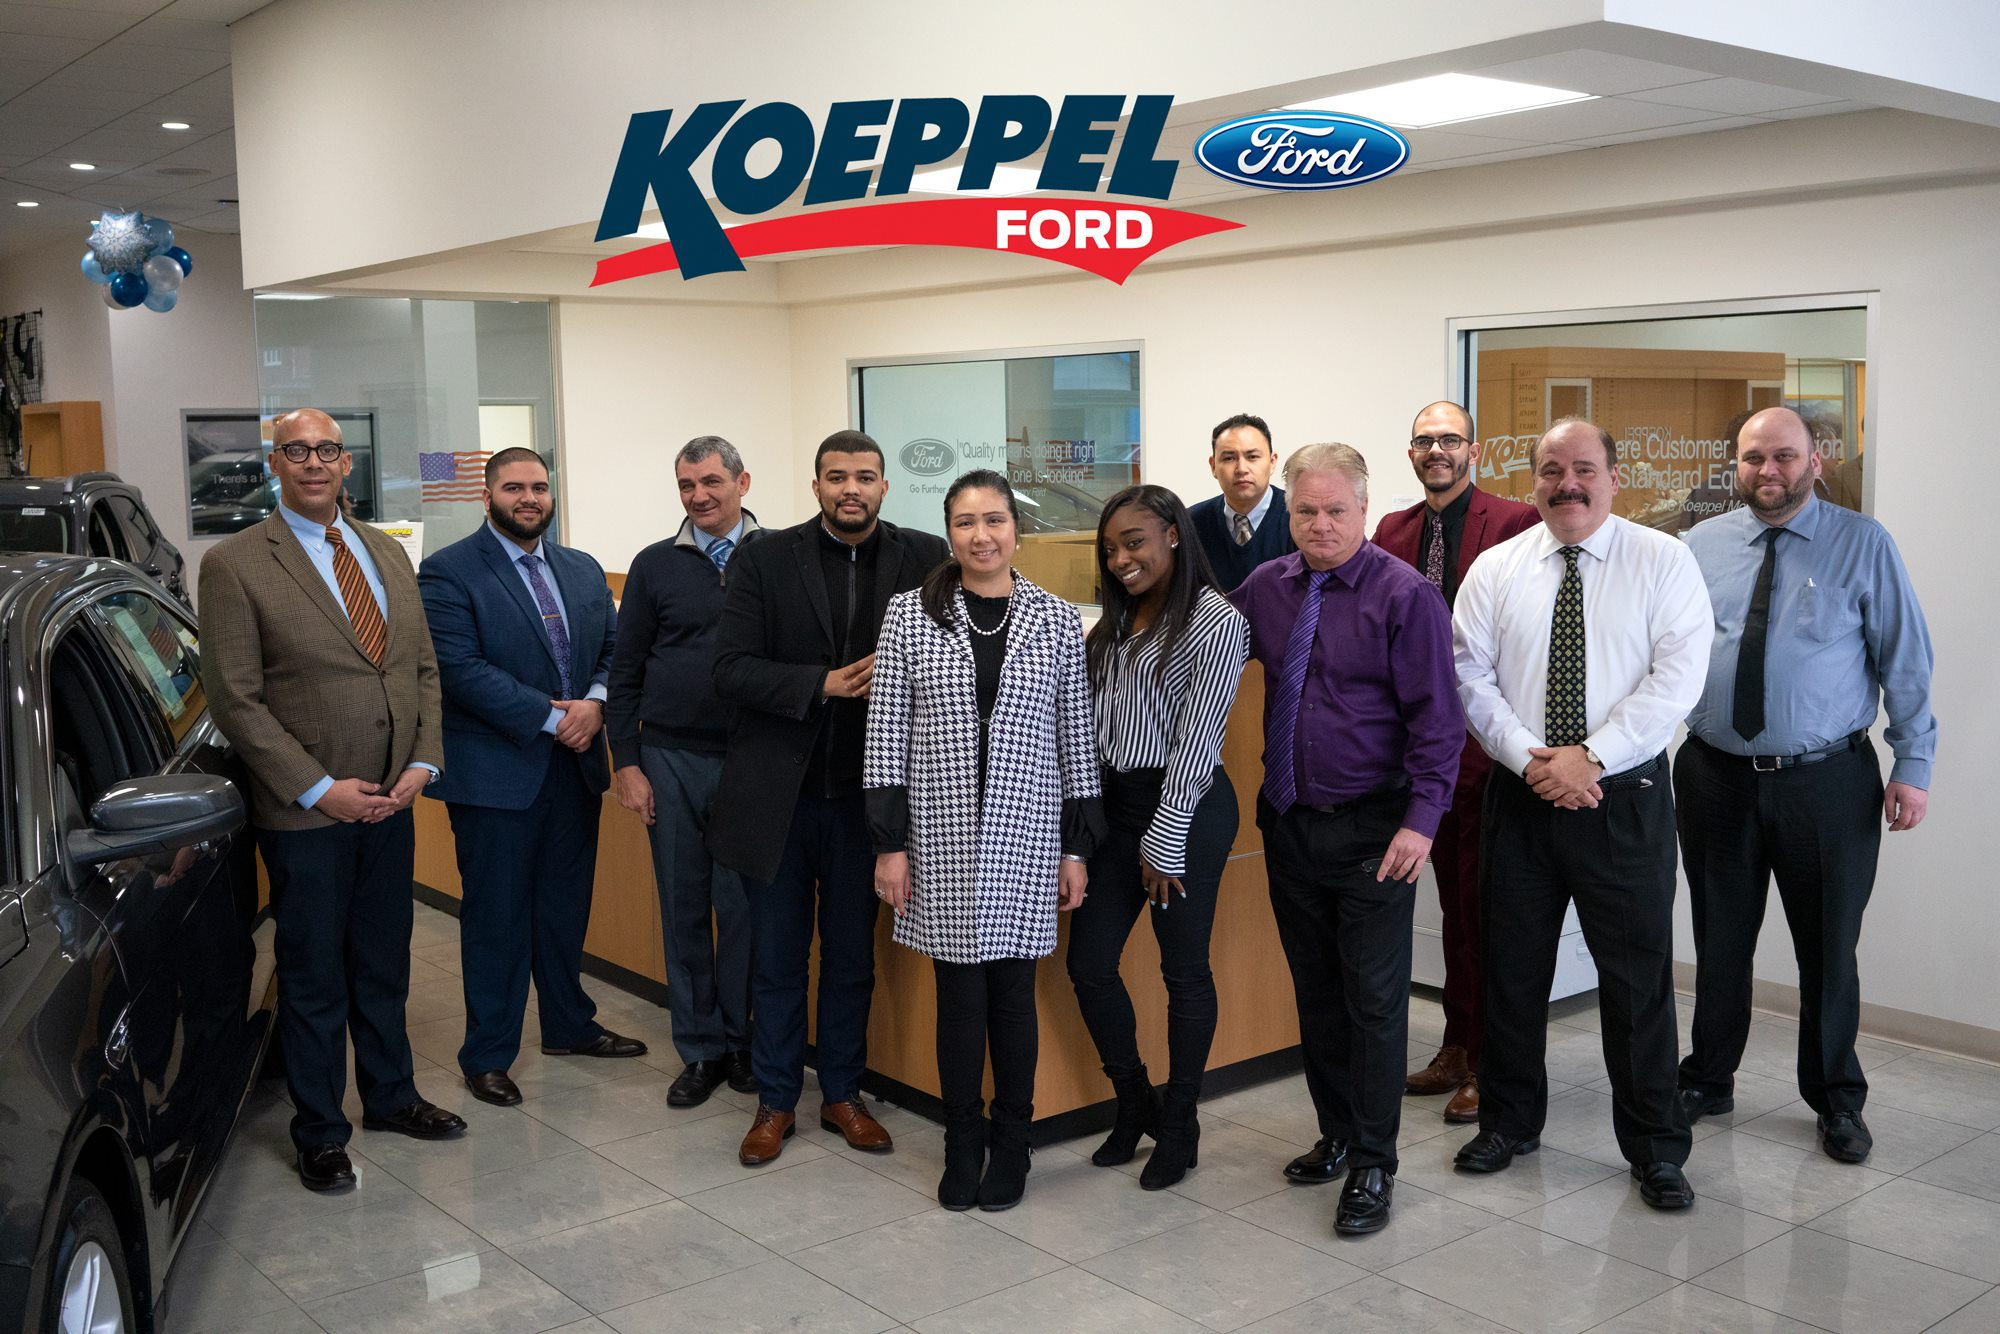 Koeppel Ford Staff